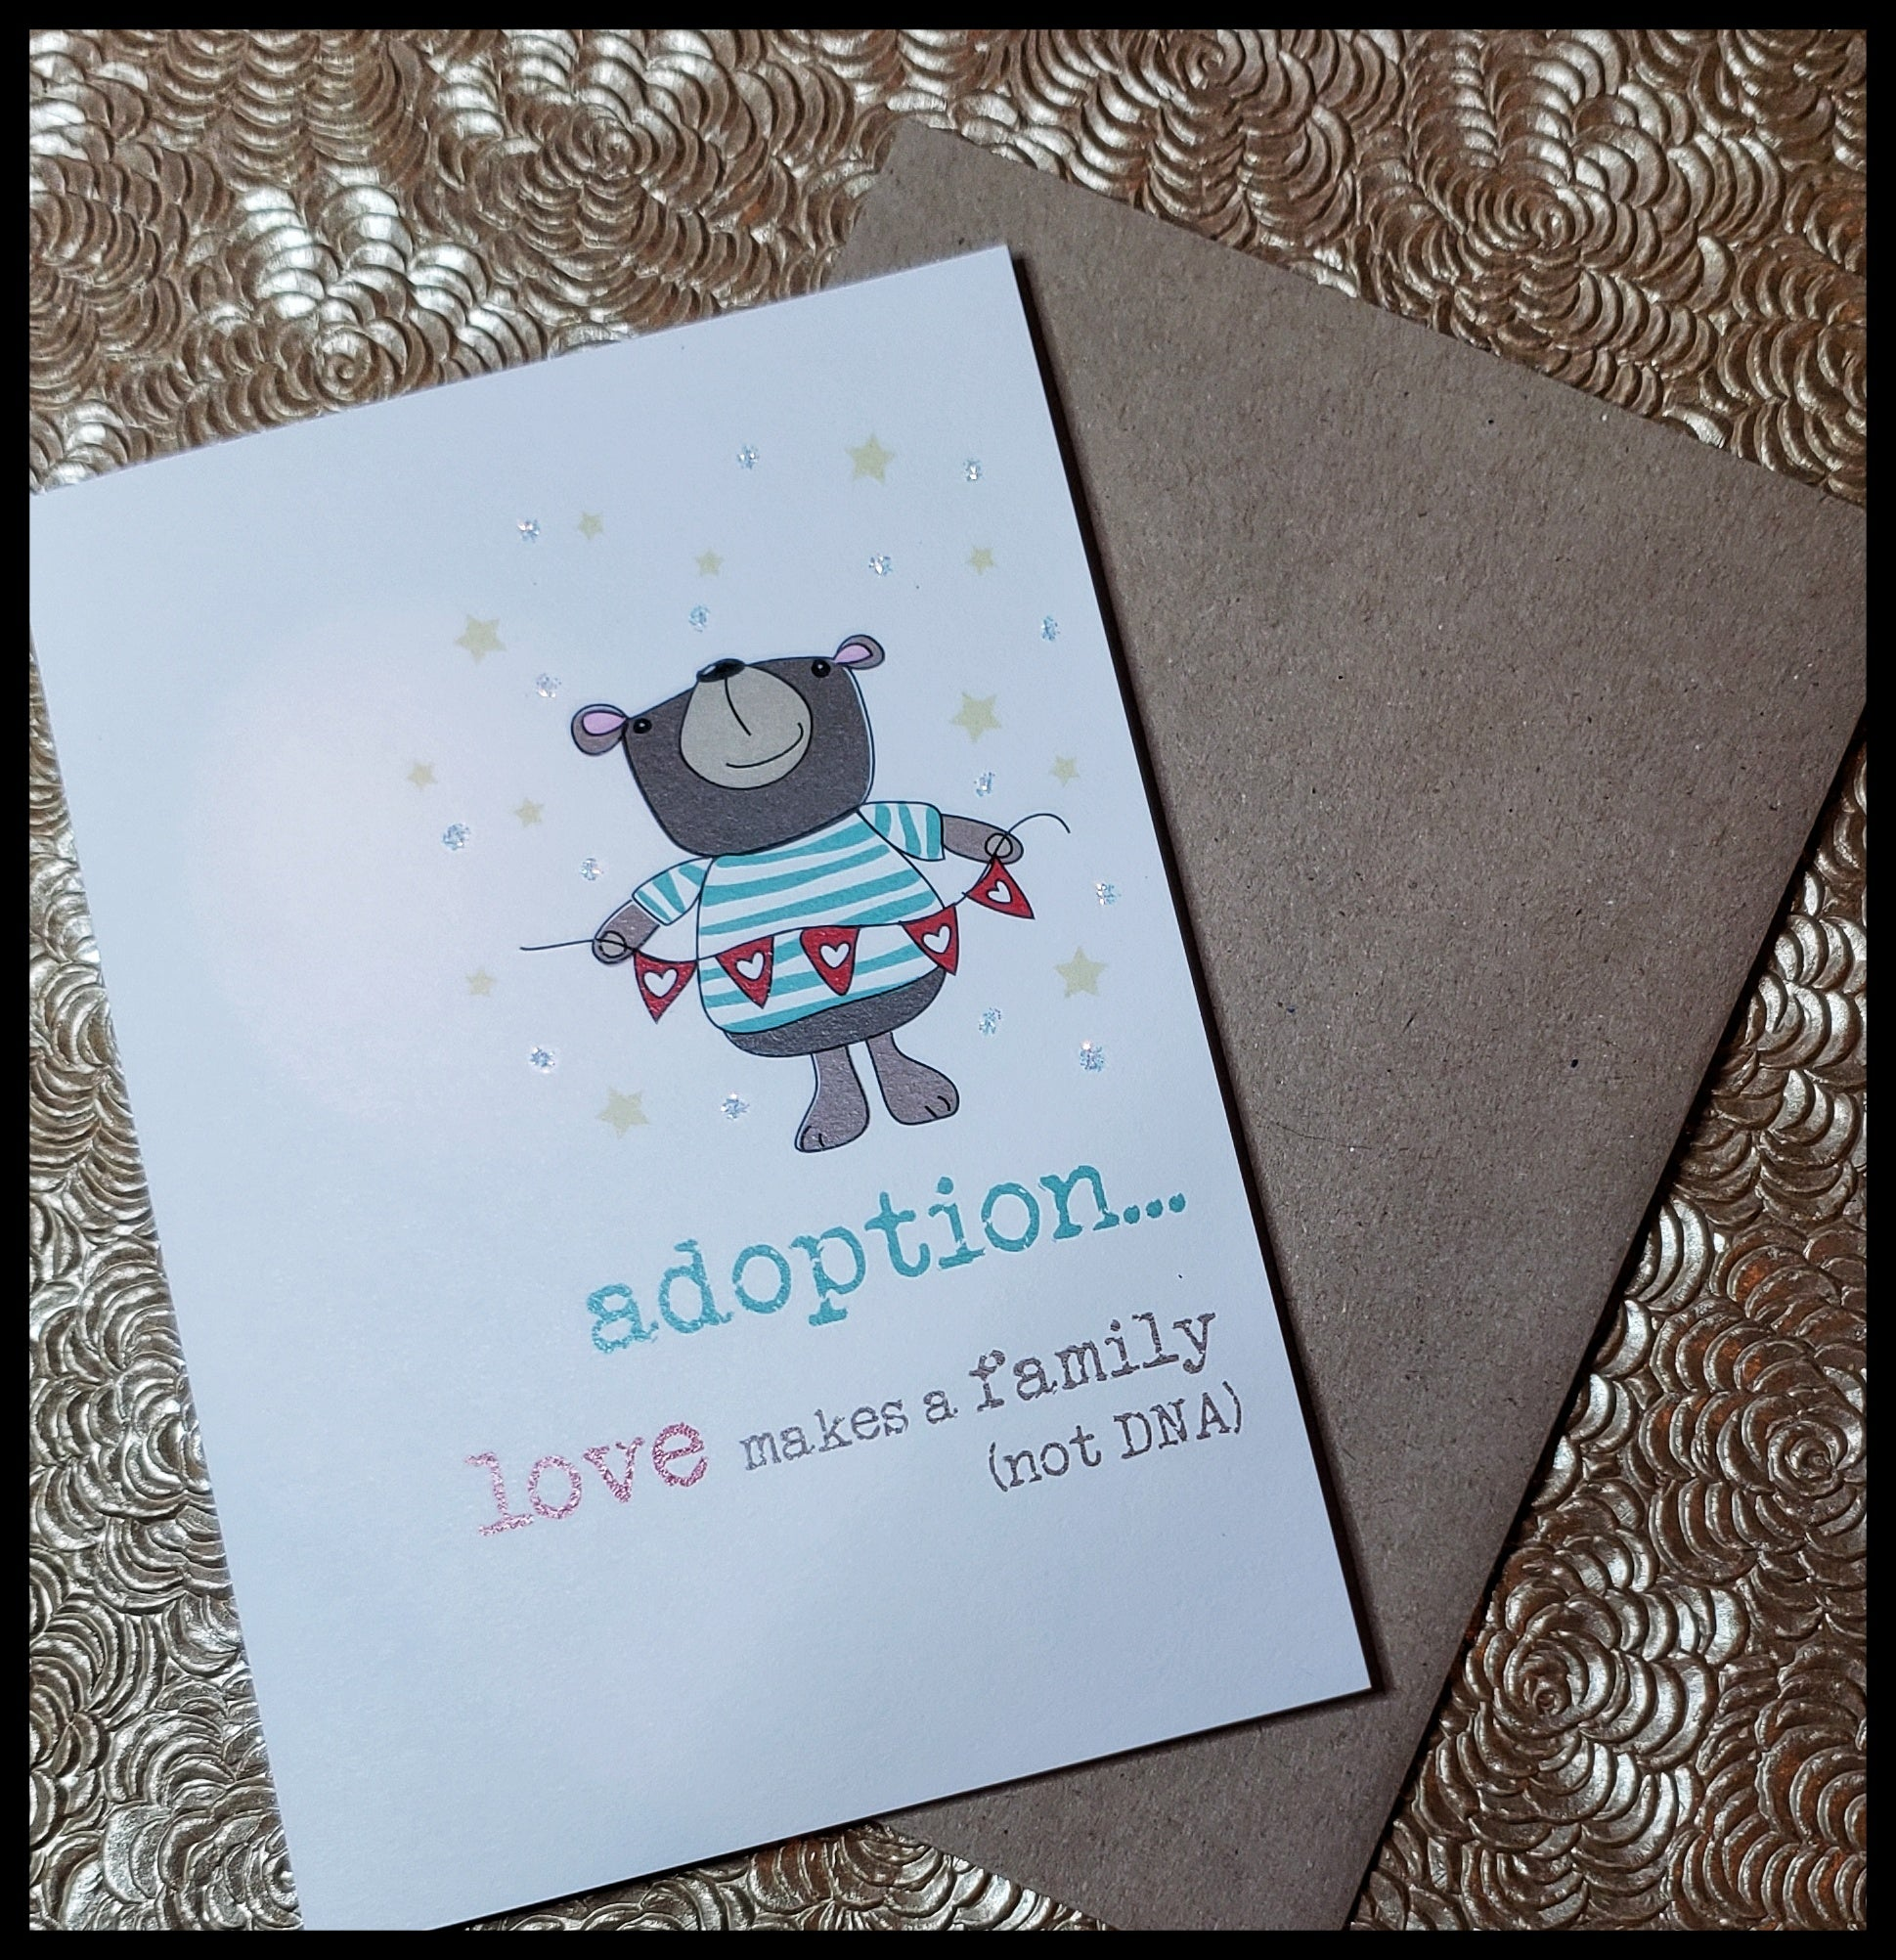 Adoption... Love makes family (not DNA)